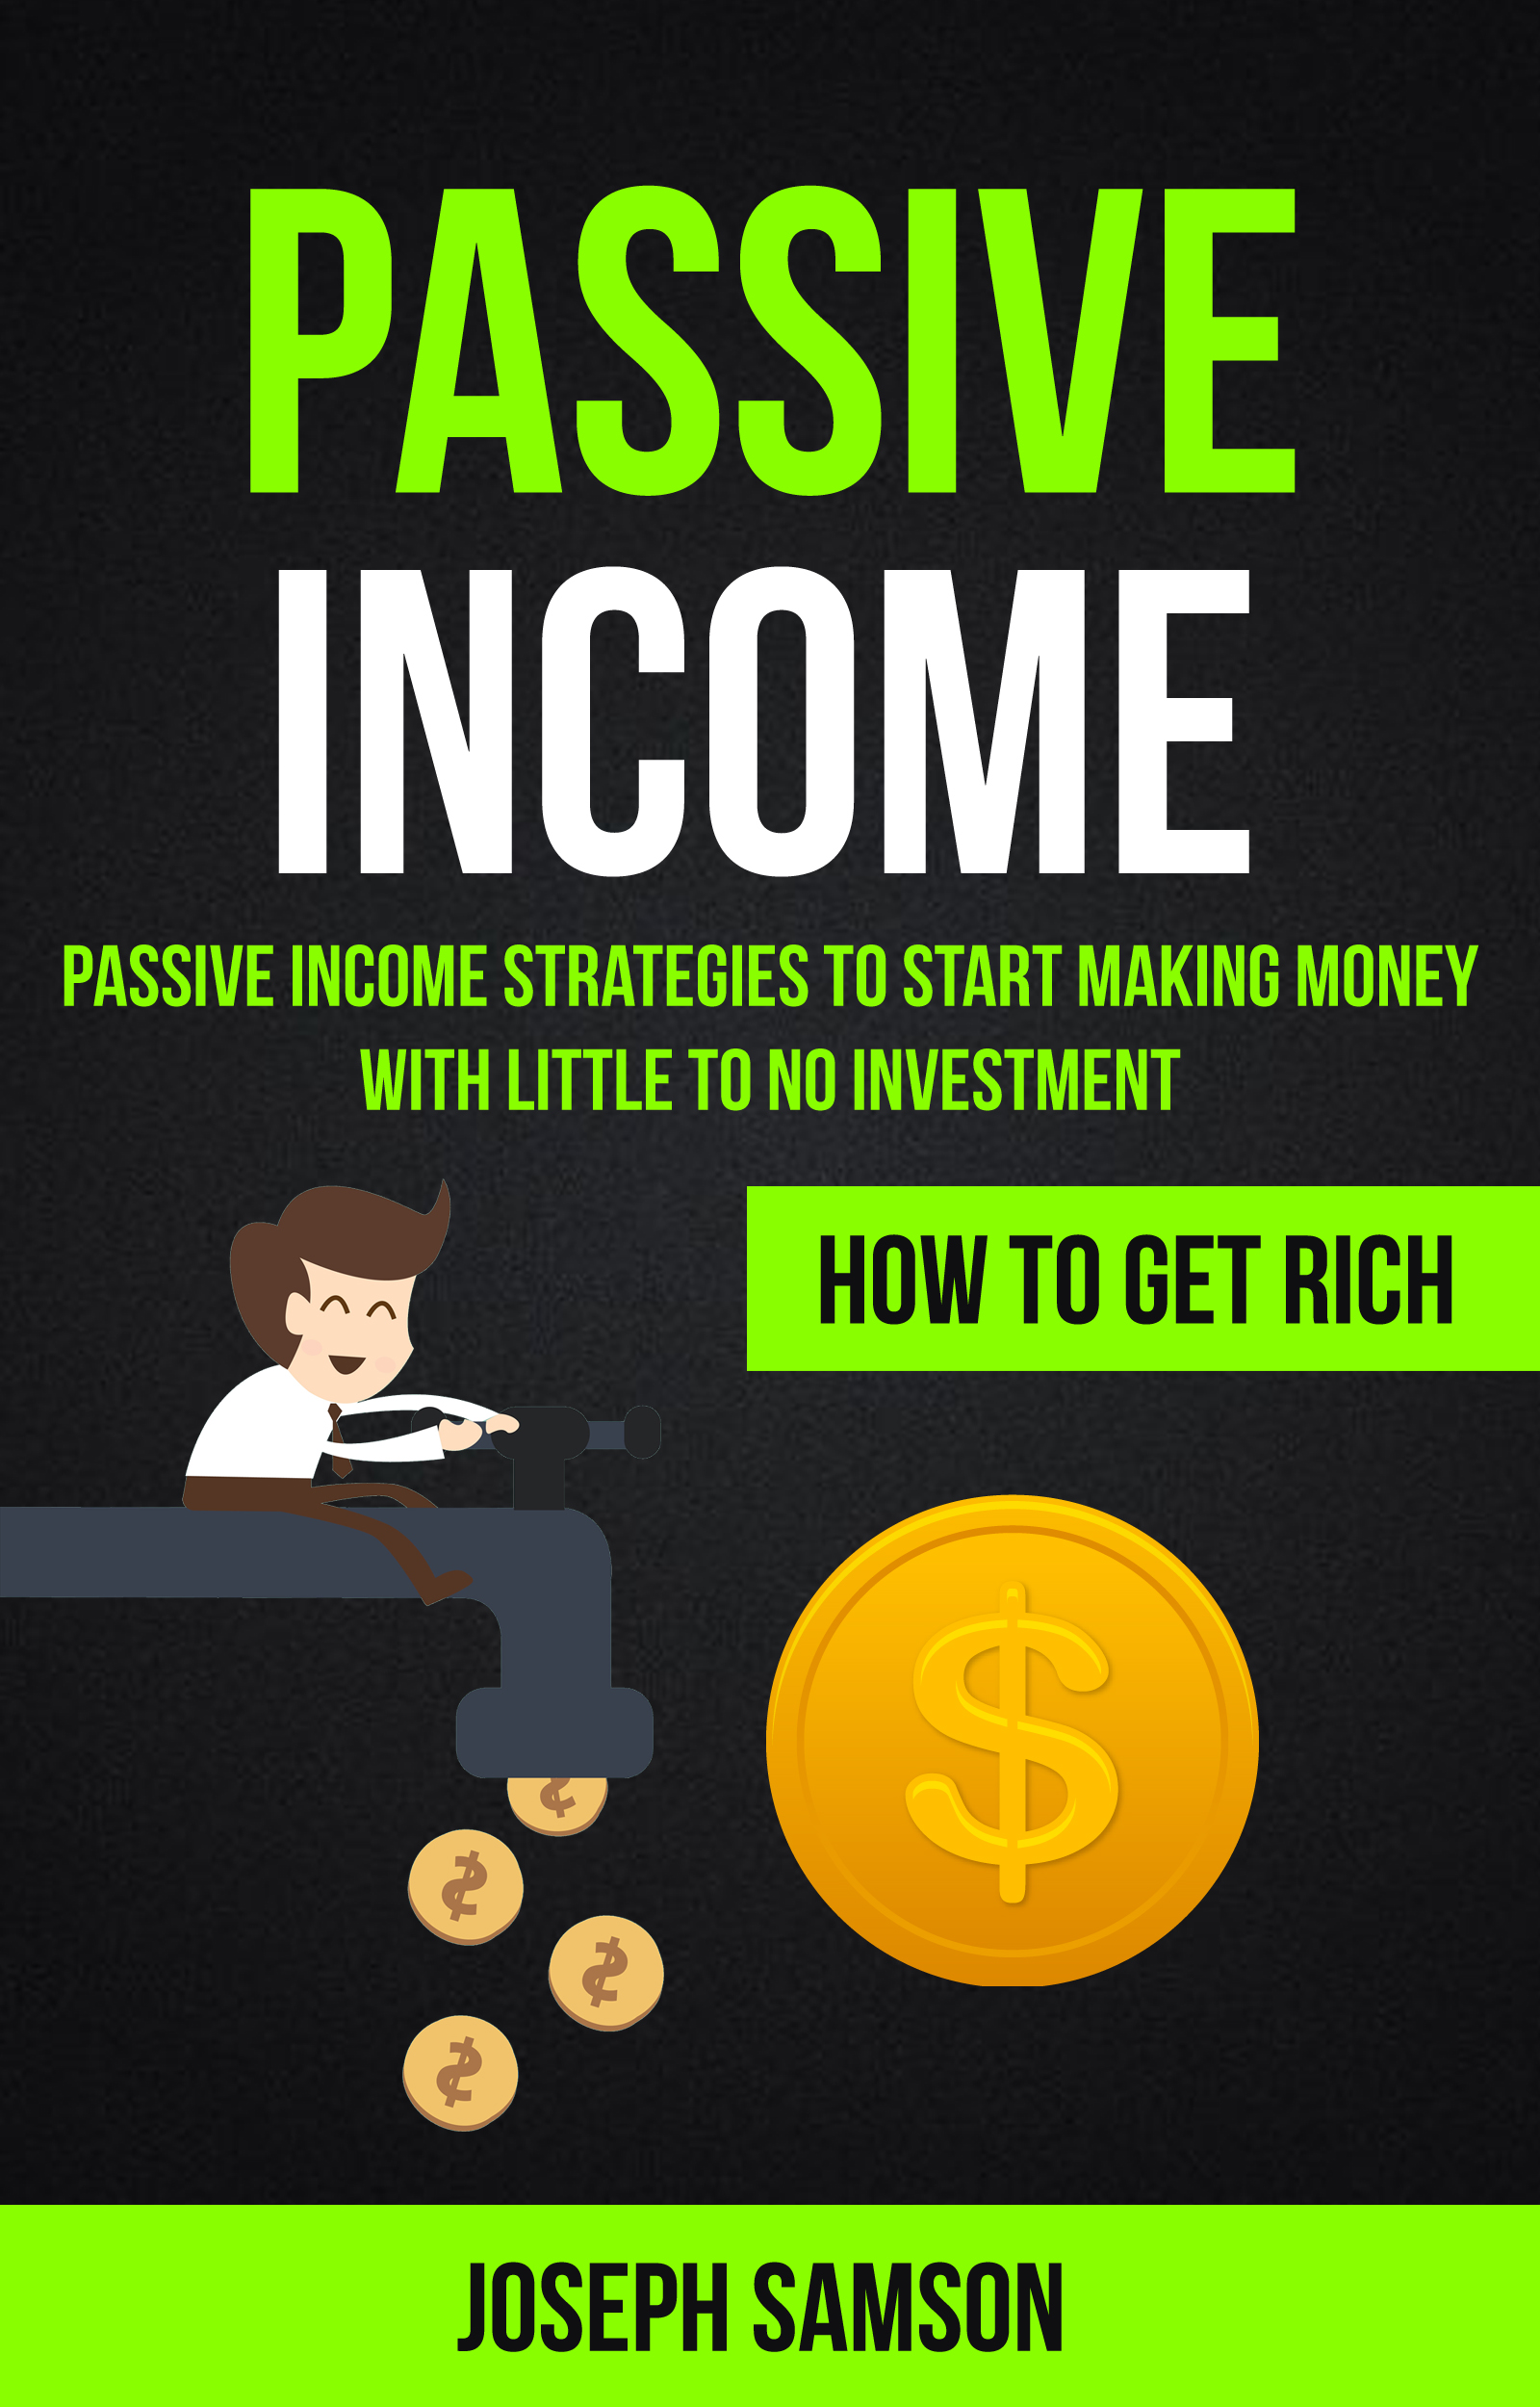 Passive income: passive income strategies to start making money with little investment